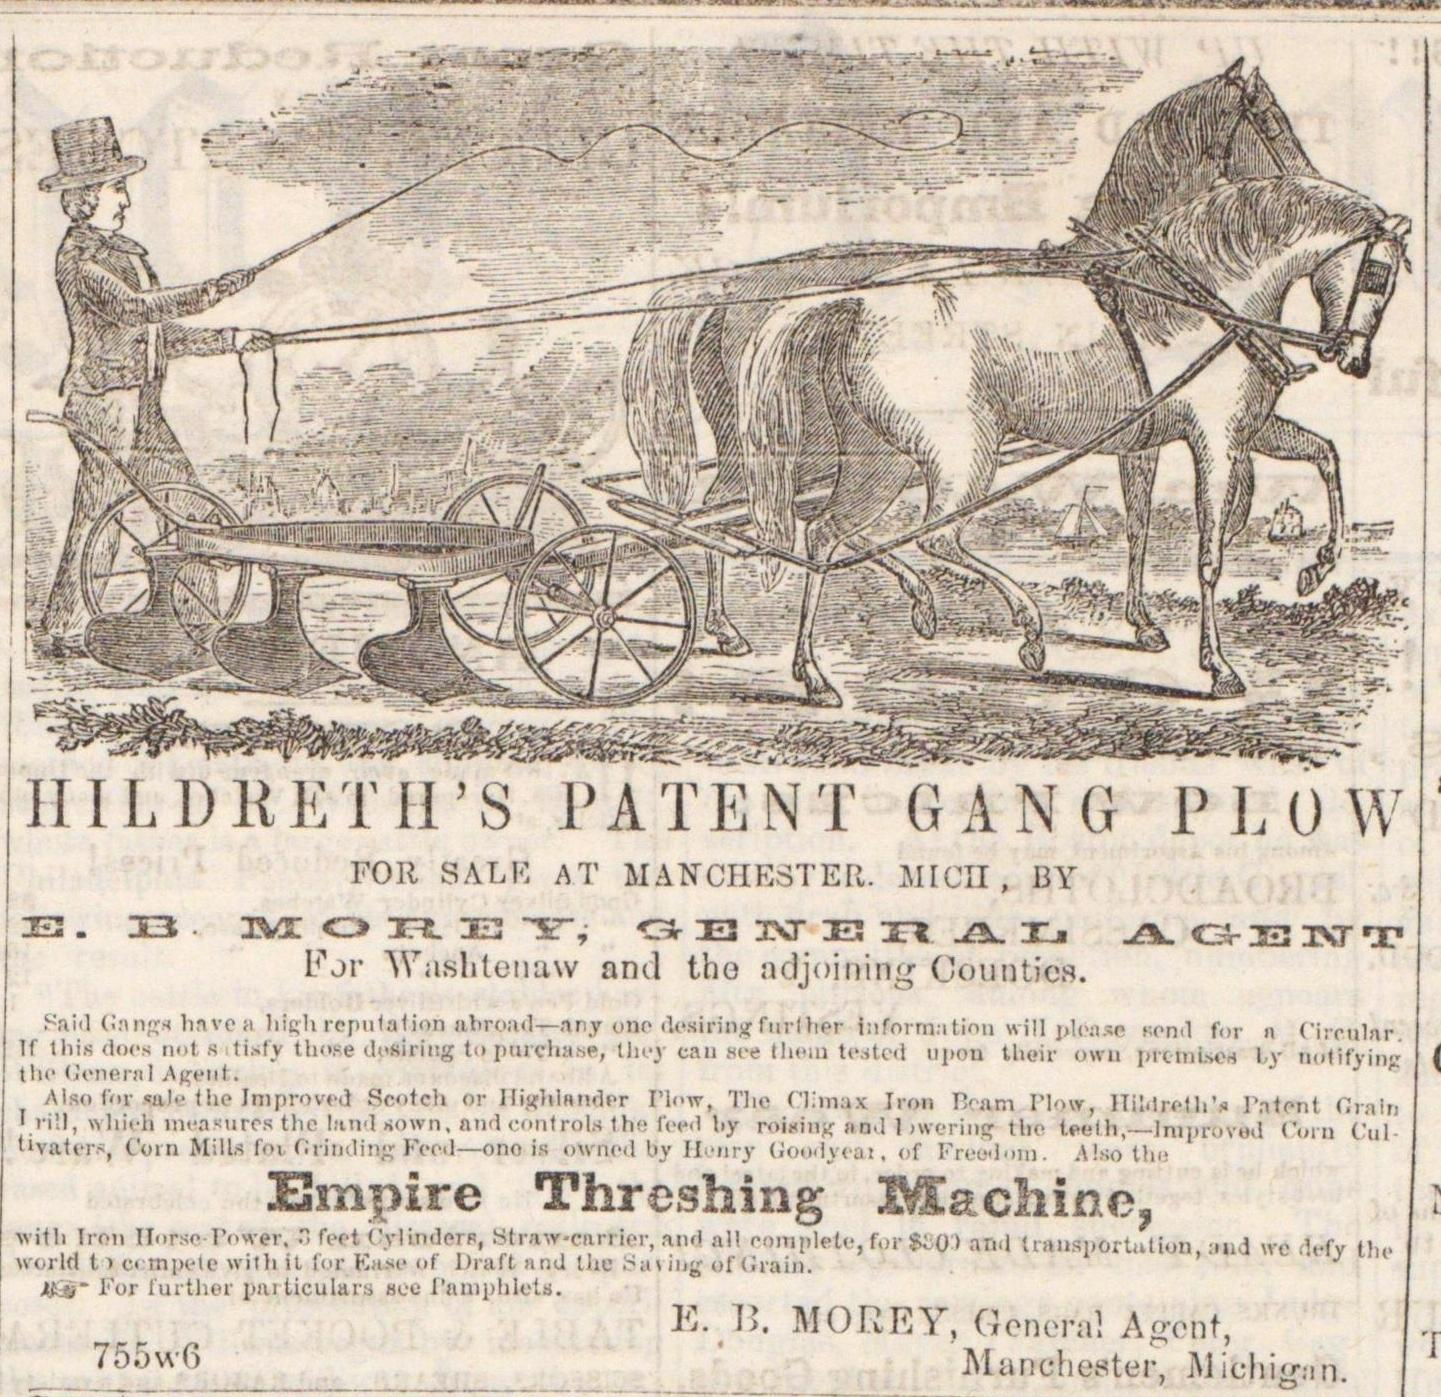 Hildreth's Patent Gang Plow image